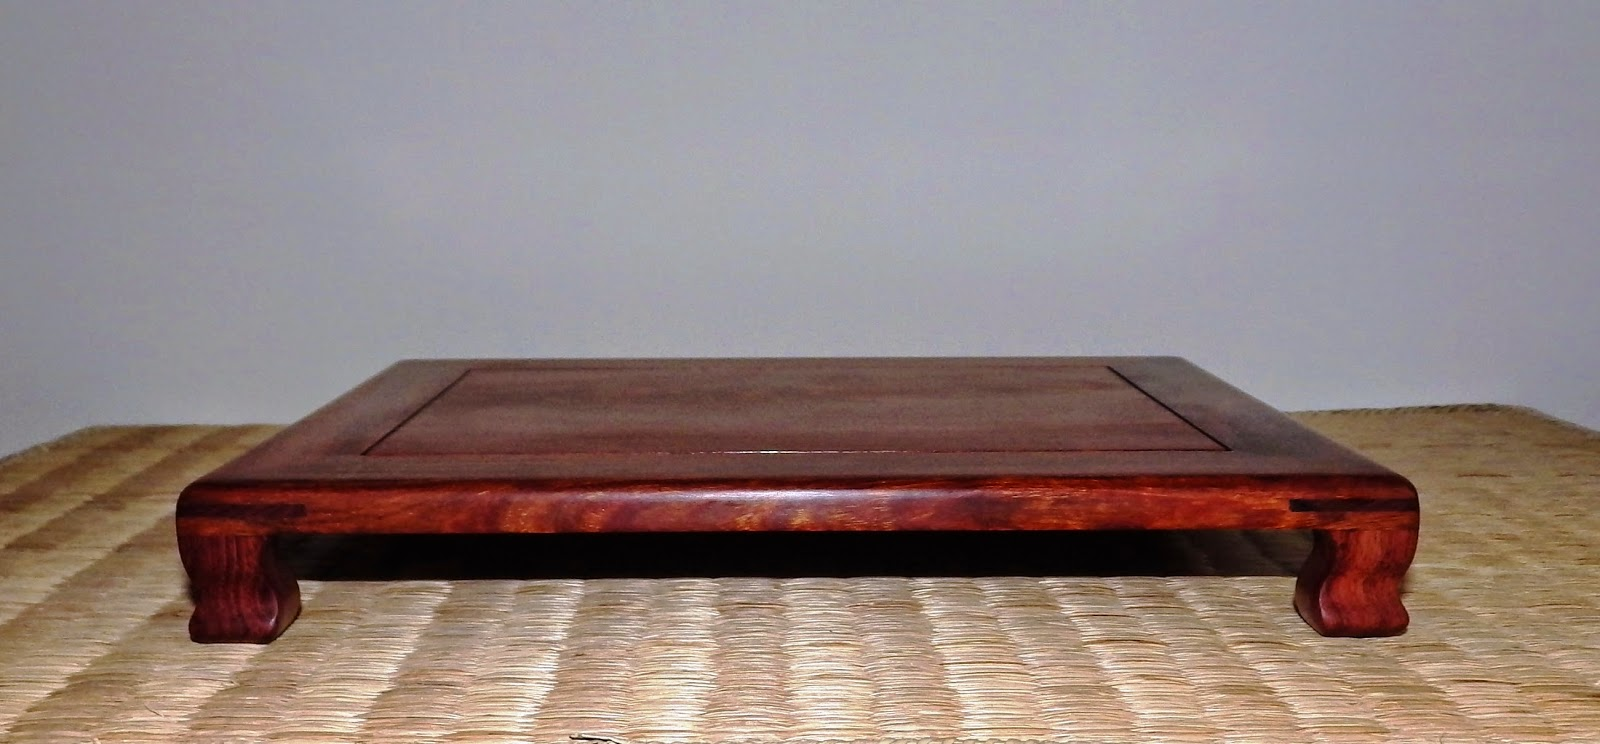 Rosewood Shohin Table 230mm X 180mm X 30mm